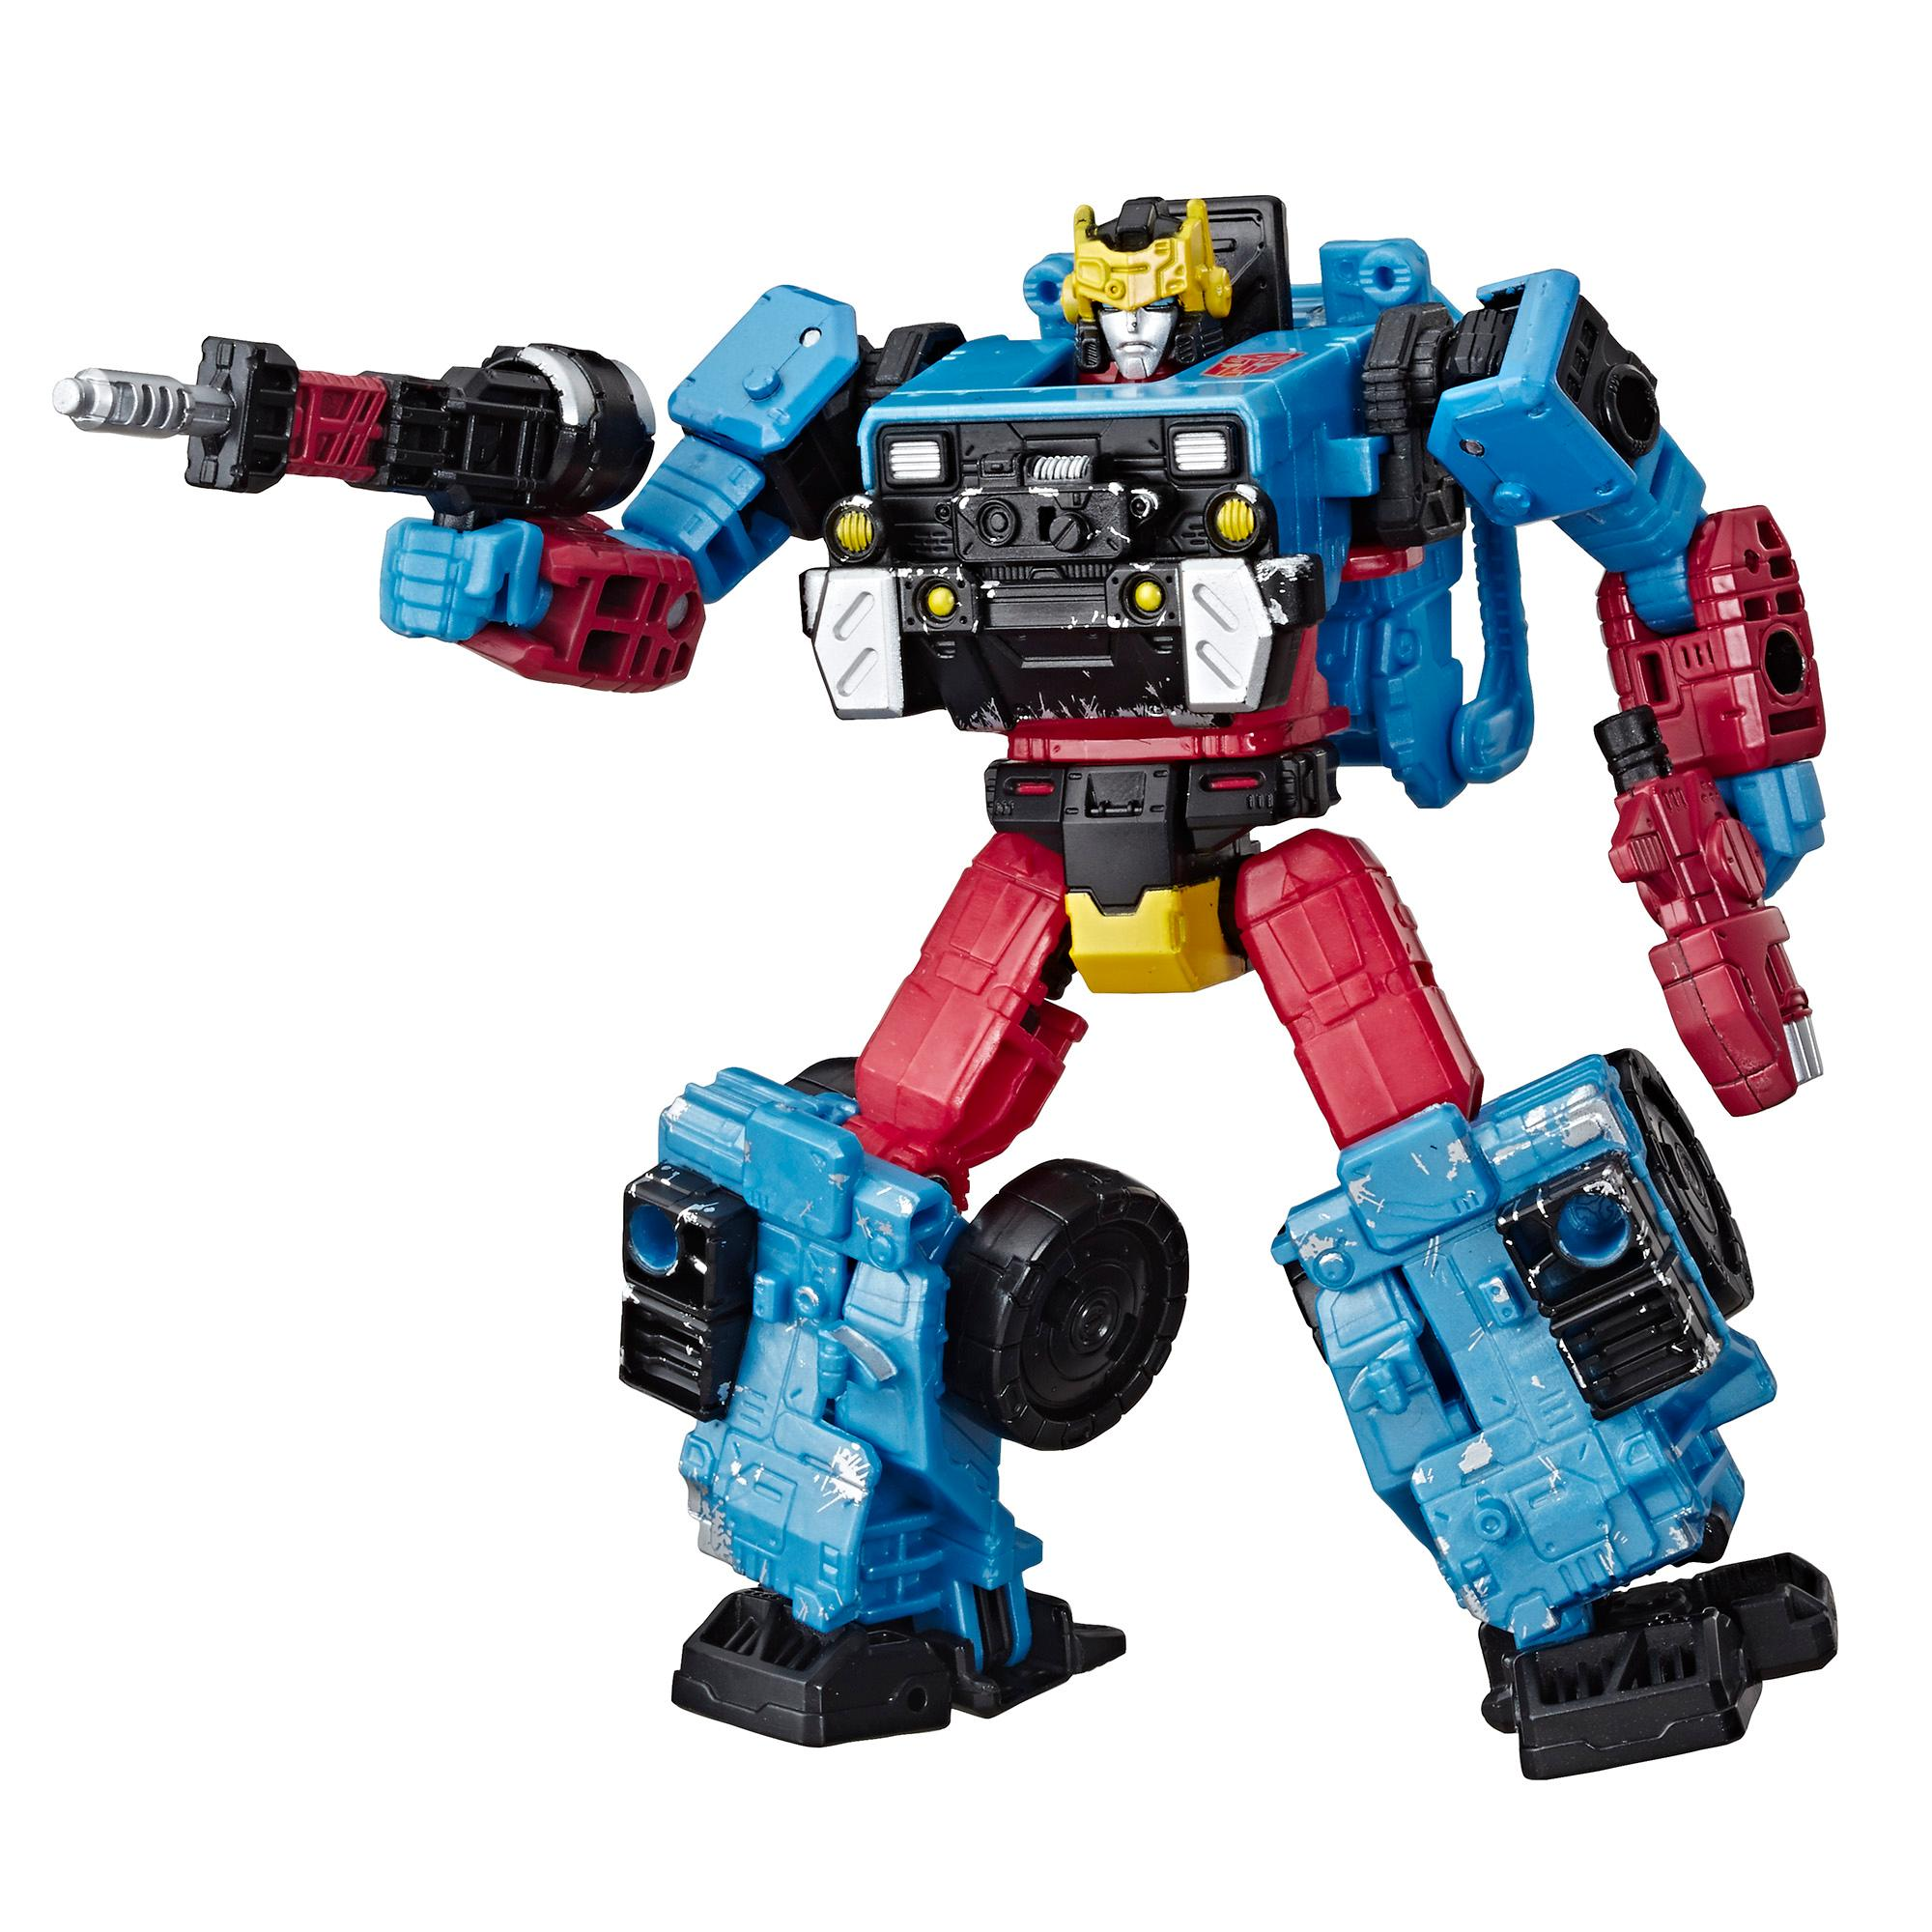 Transformers Generations Selects WFC-GS09 Hot Shot, War for Cybertron Deluxe Class Figure - Collector Figure, 5.5-inch